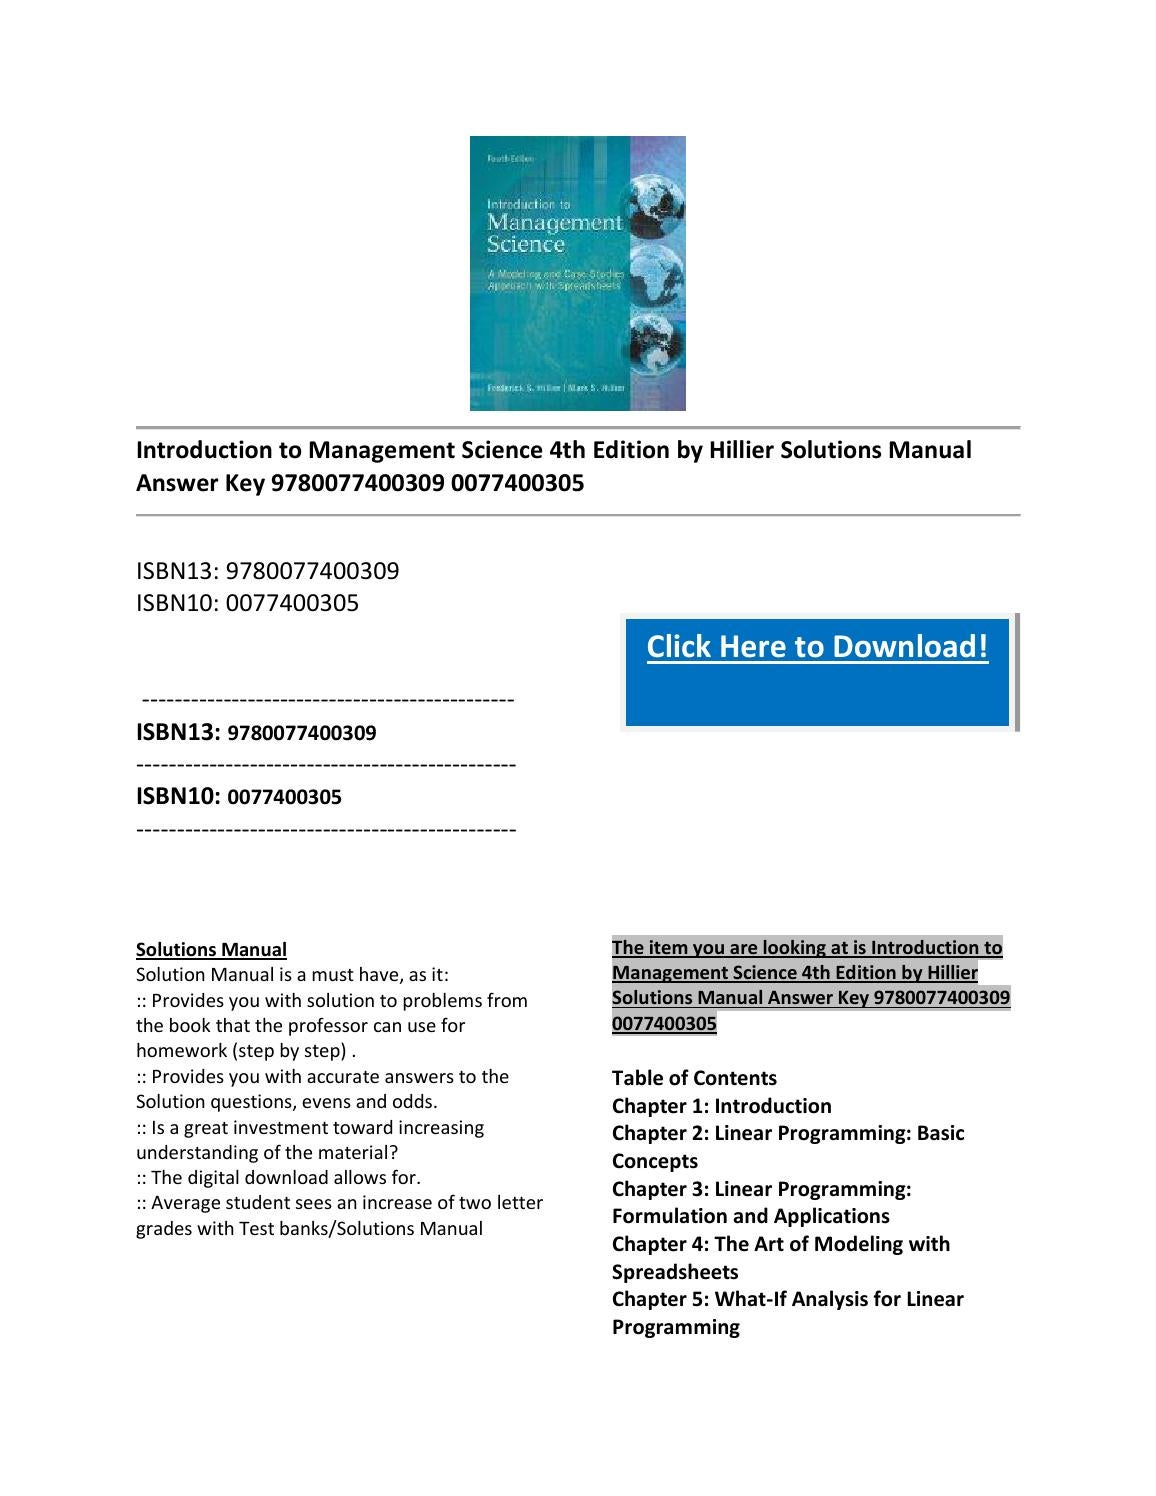 Introduction To Management Science 4th Edition By Hillier